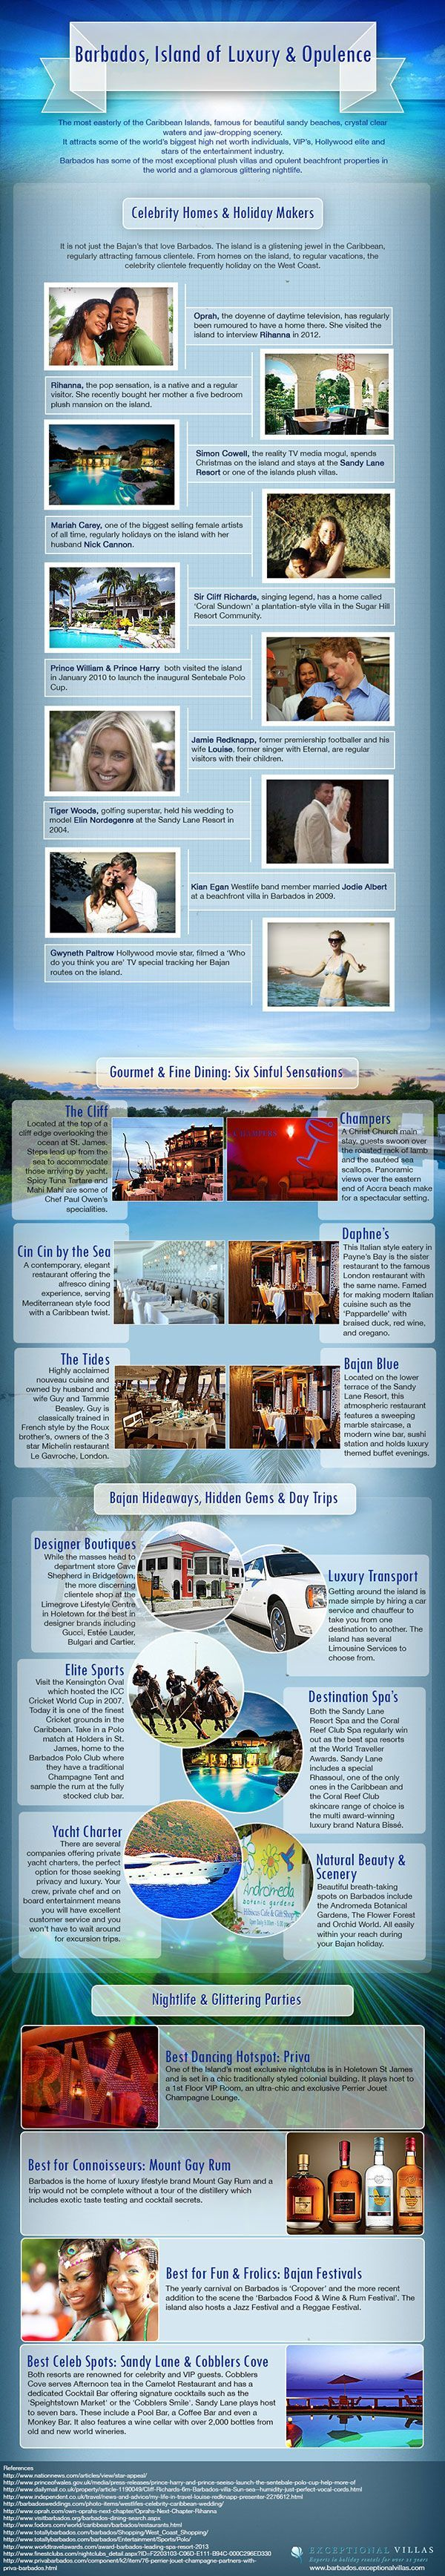 #Barbados the #luxury island infographic